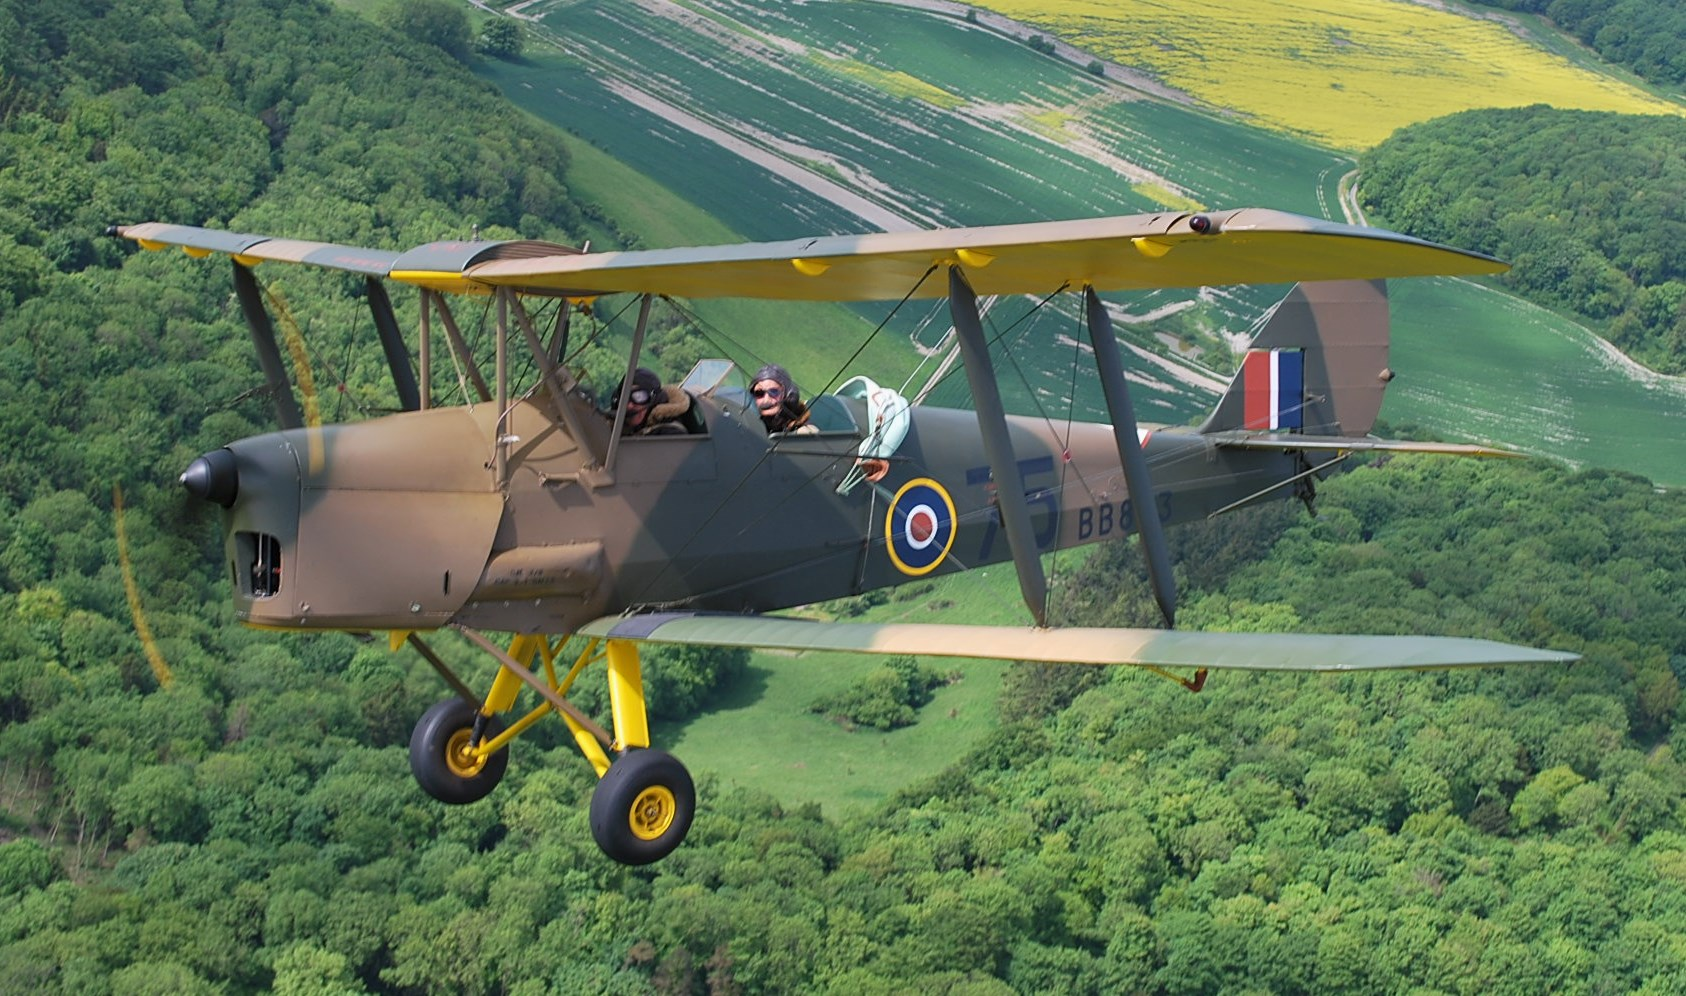 de Haviland Tiger Moth DH 82 A - BB803 G-ADWJ